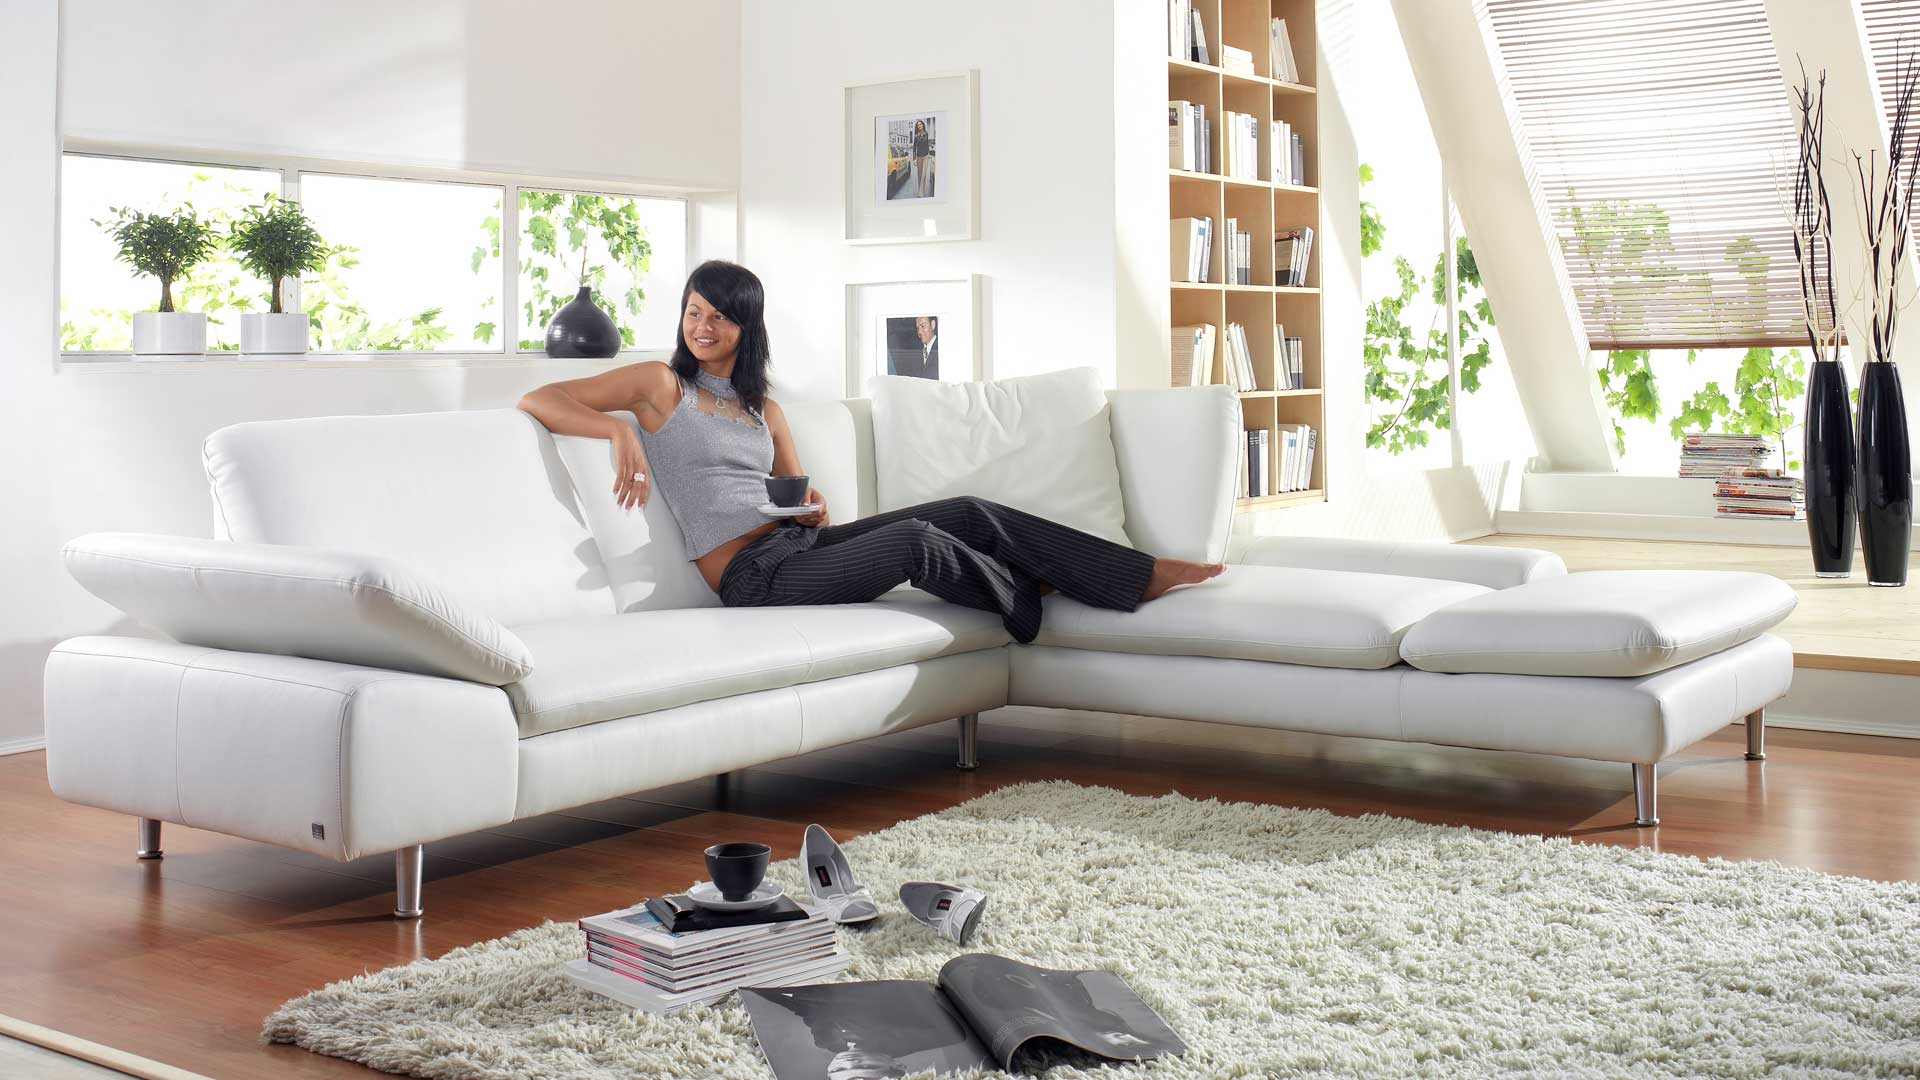 wo sofa couch kaufen bilder wischi 22858 loop. Black Bedroom Furniture Sets. Home Design Ideas